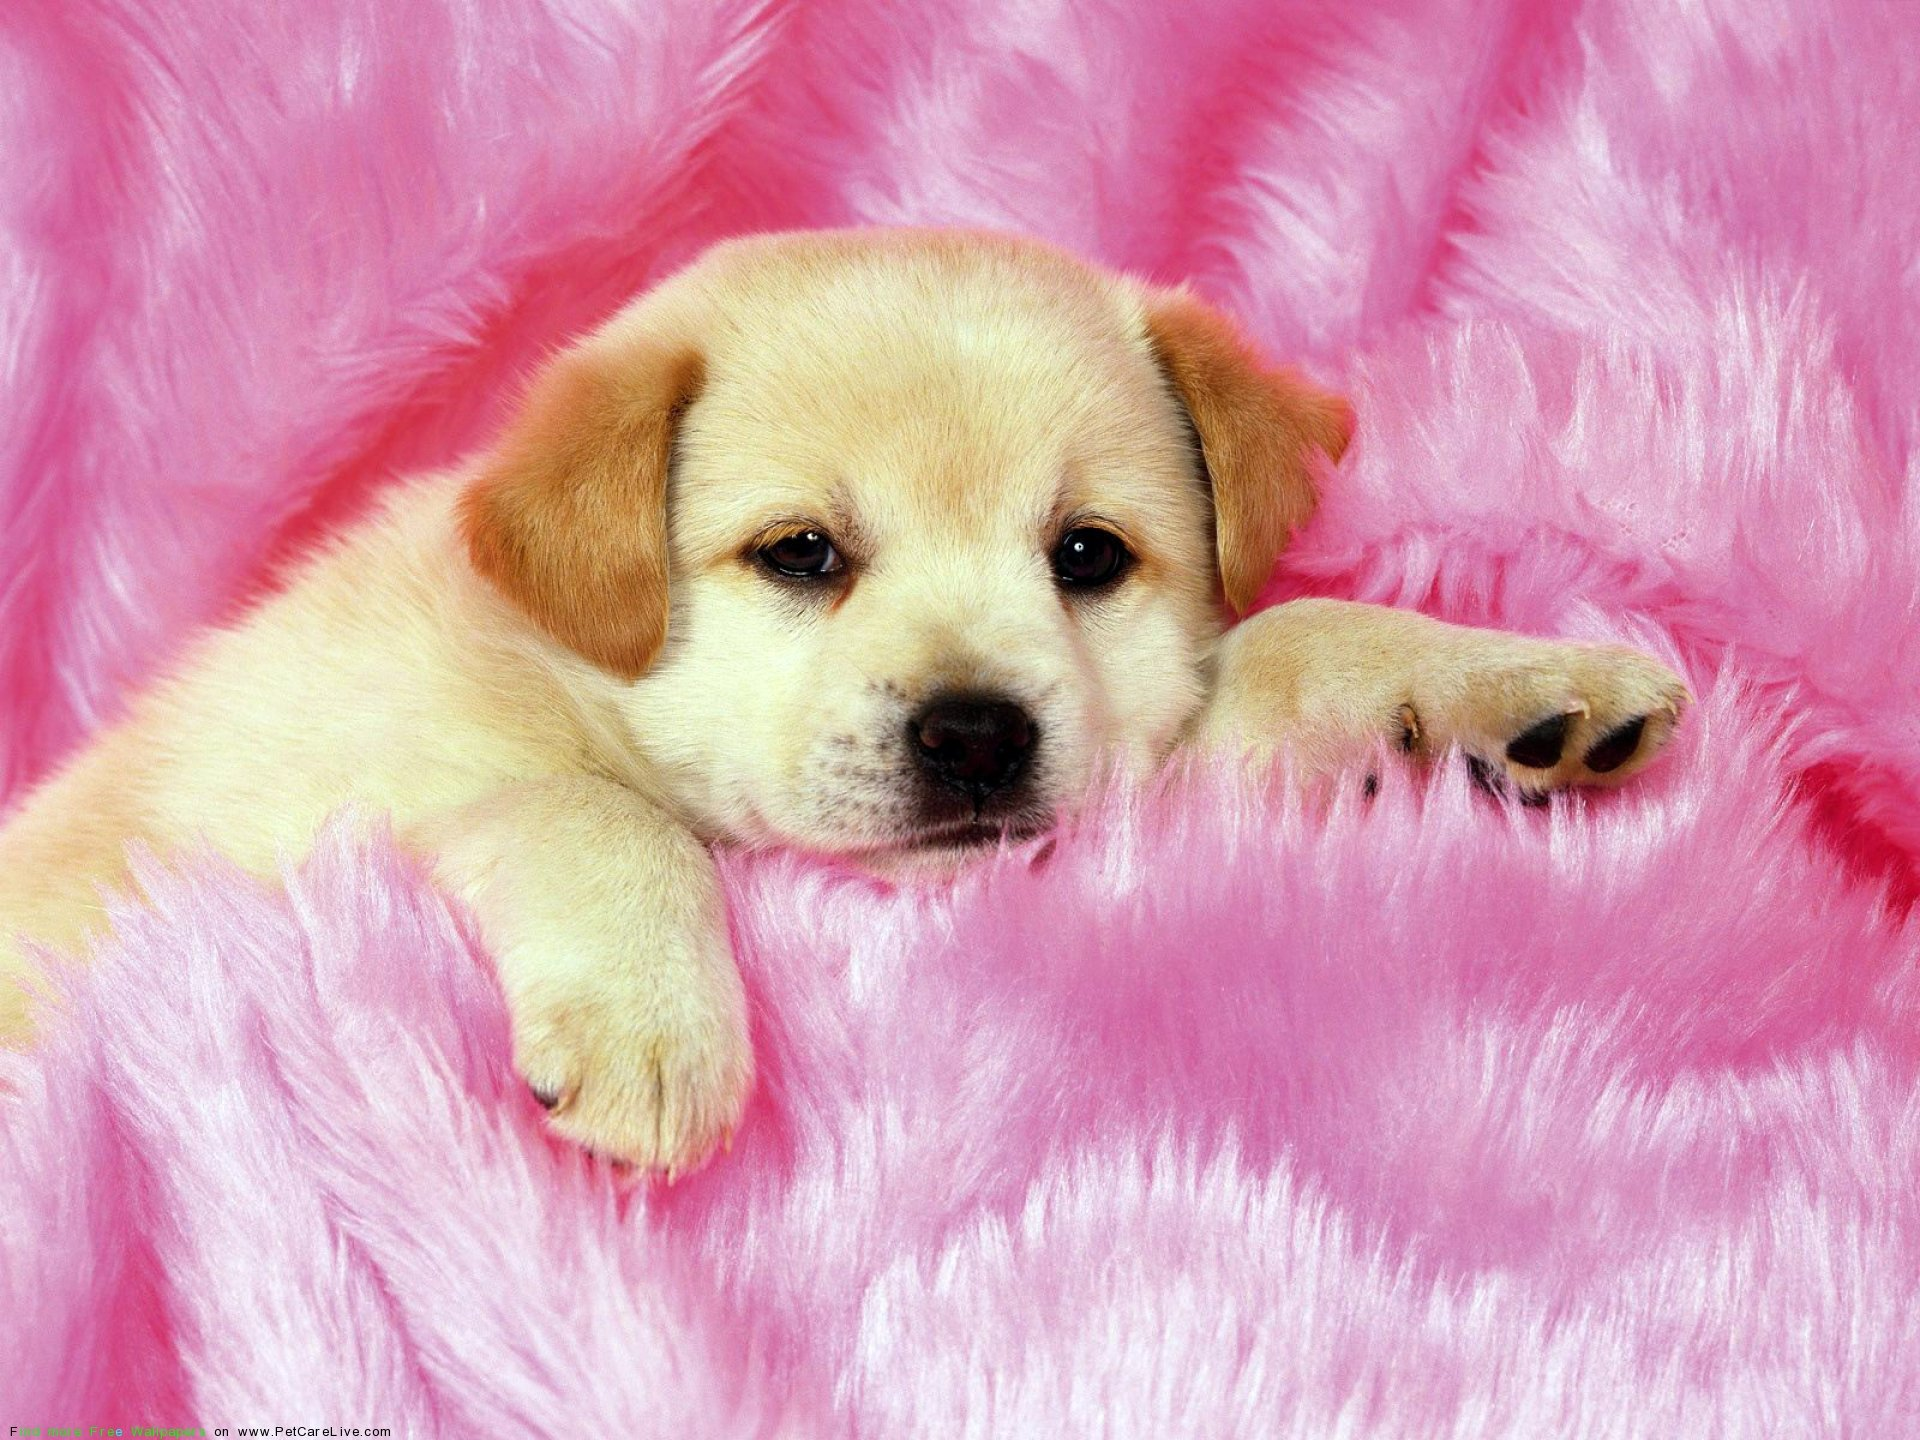 The Little cute Dogs Puppies desktop wallpaper pictures for PC 1920x1440